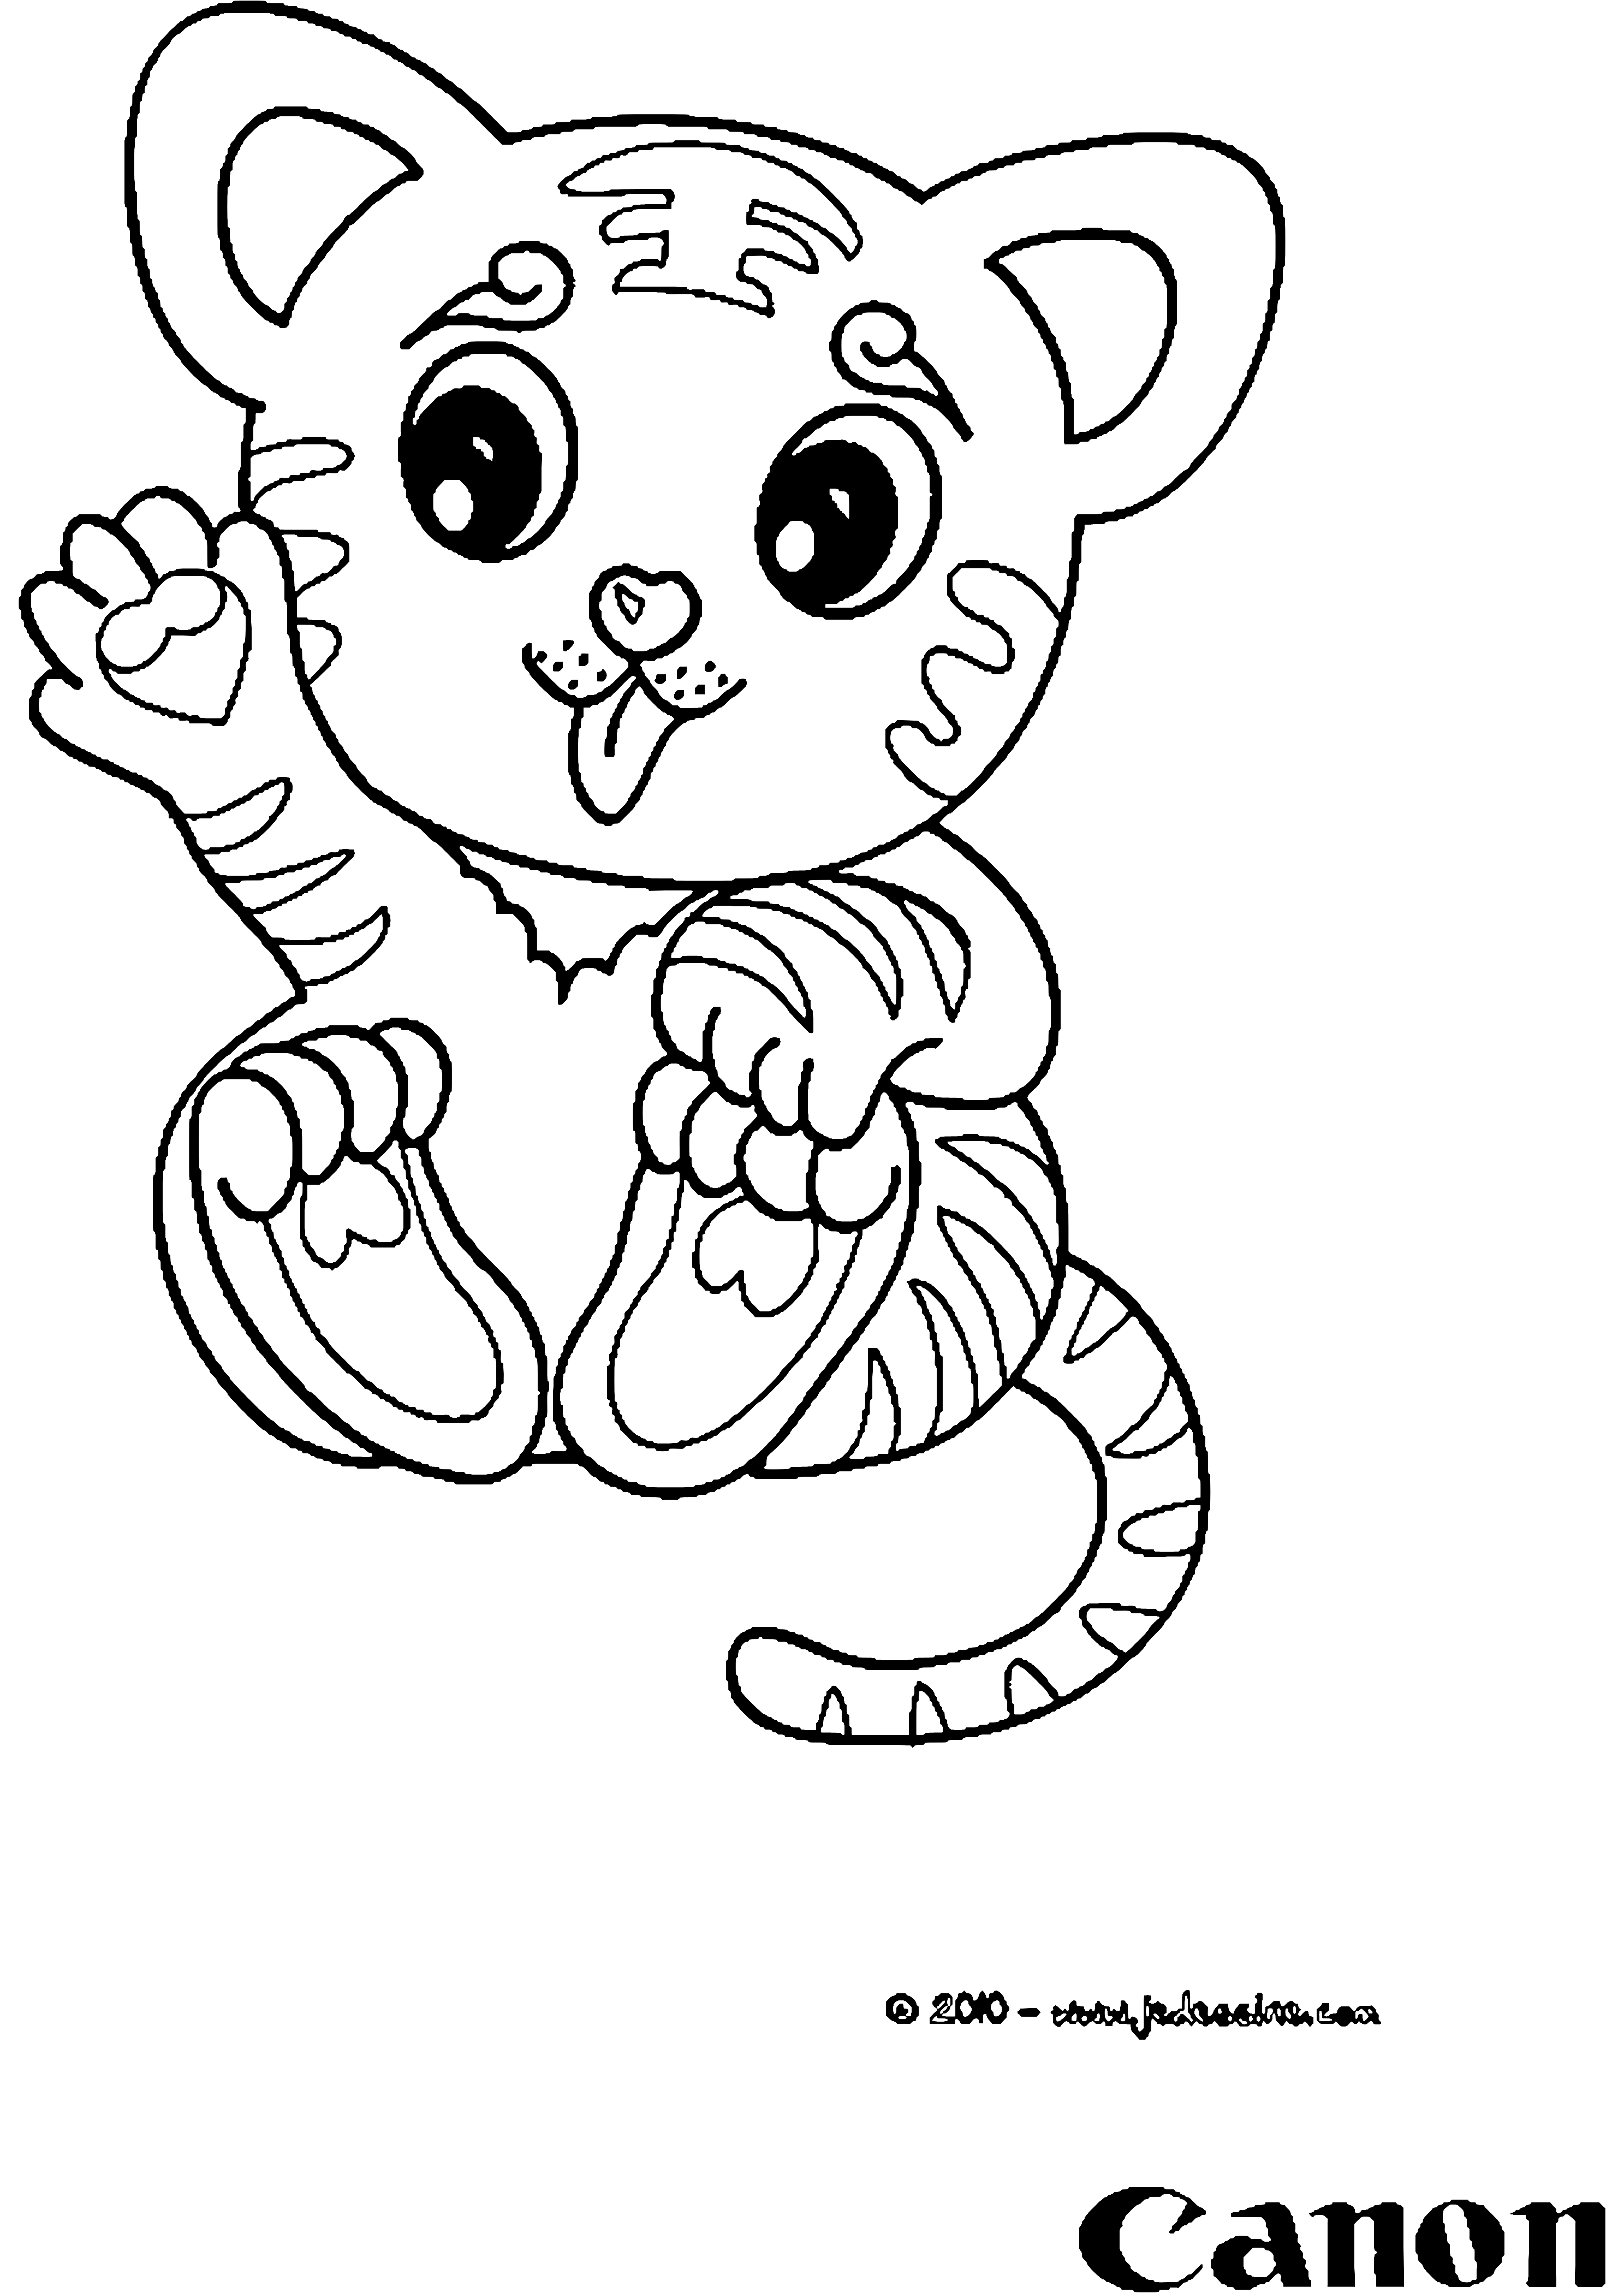 jungle animal coloring pages jungle animals coloring pages coloring pages for kids animal jungle pages coloring